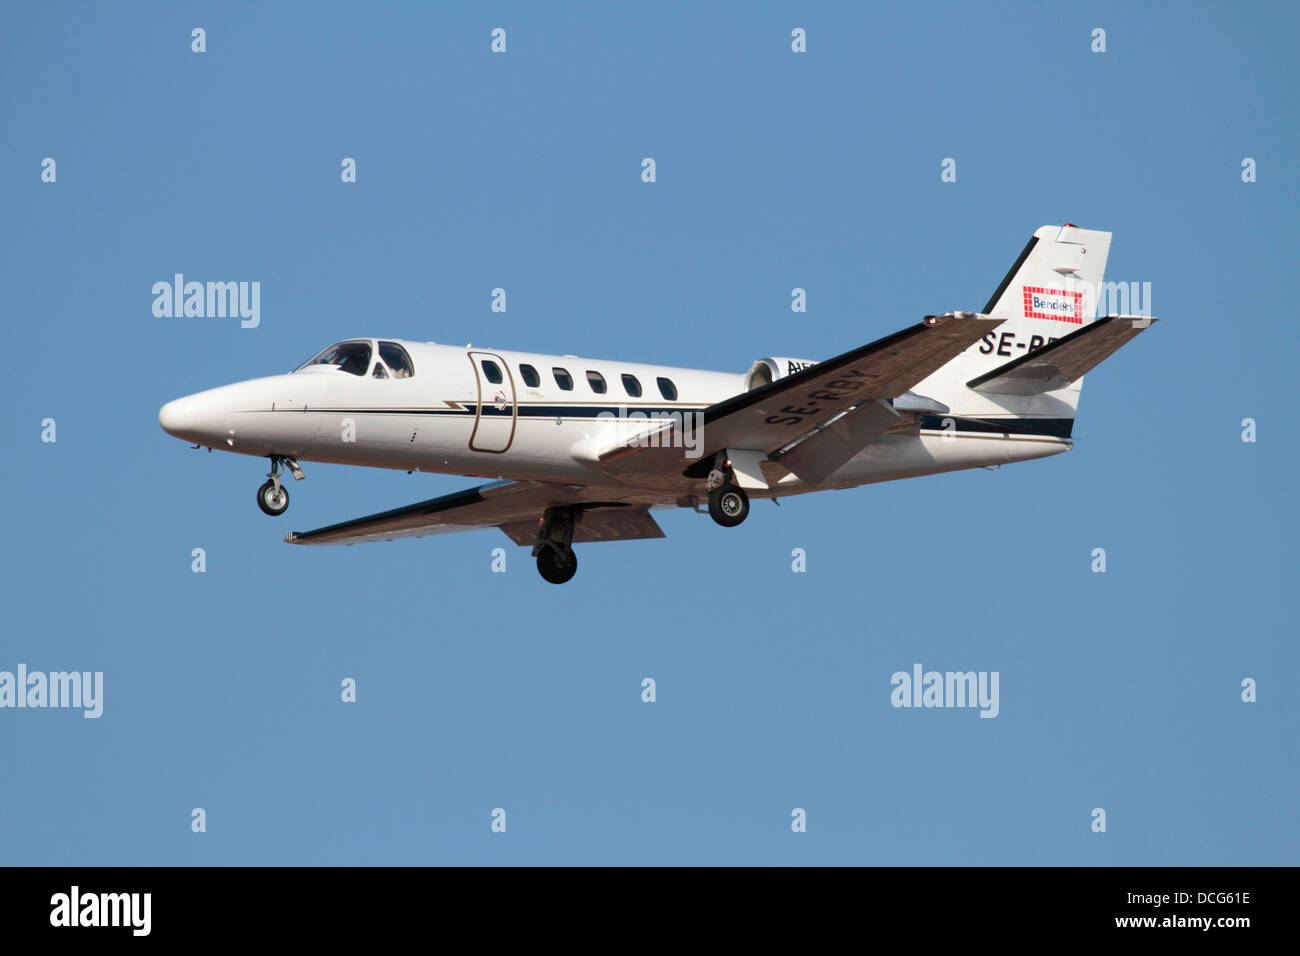 Cessna Citation Bravo business jet su aeromobili approccio Immagini Stock